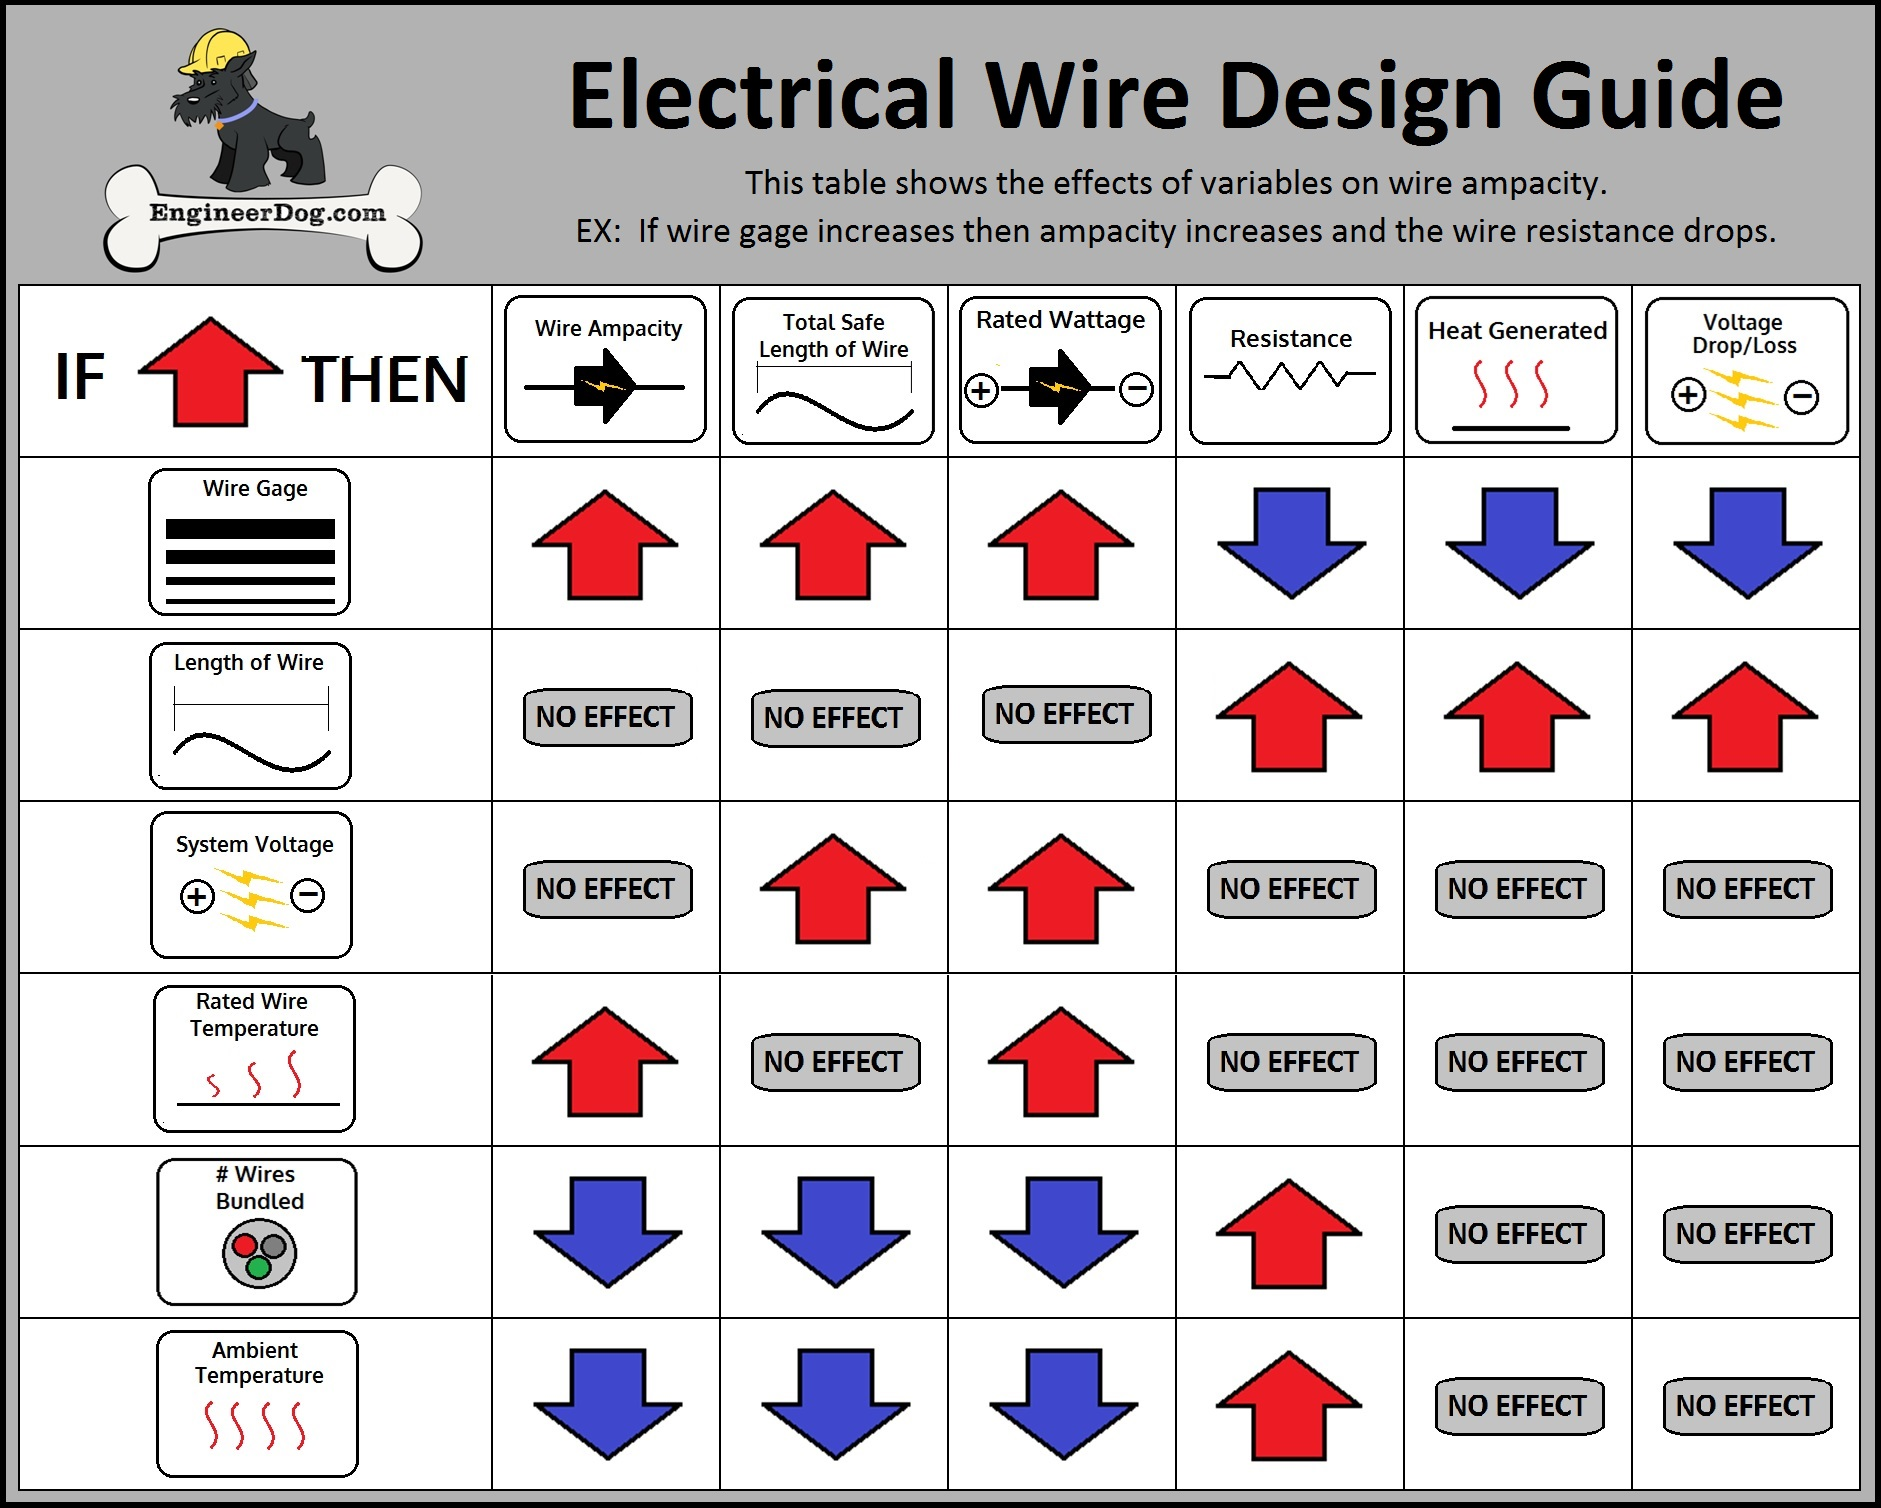 Wire rated current wire center free electrical wire gauge sizing calculator engineerdog rh engineerdog com wire current rating chart wire current greentooth Images